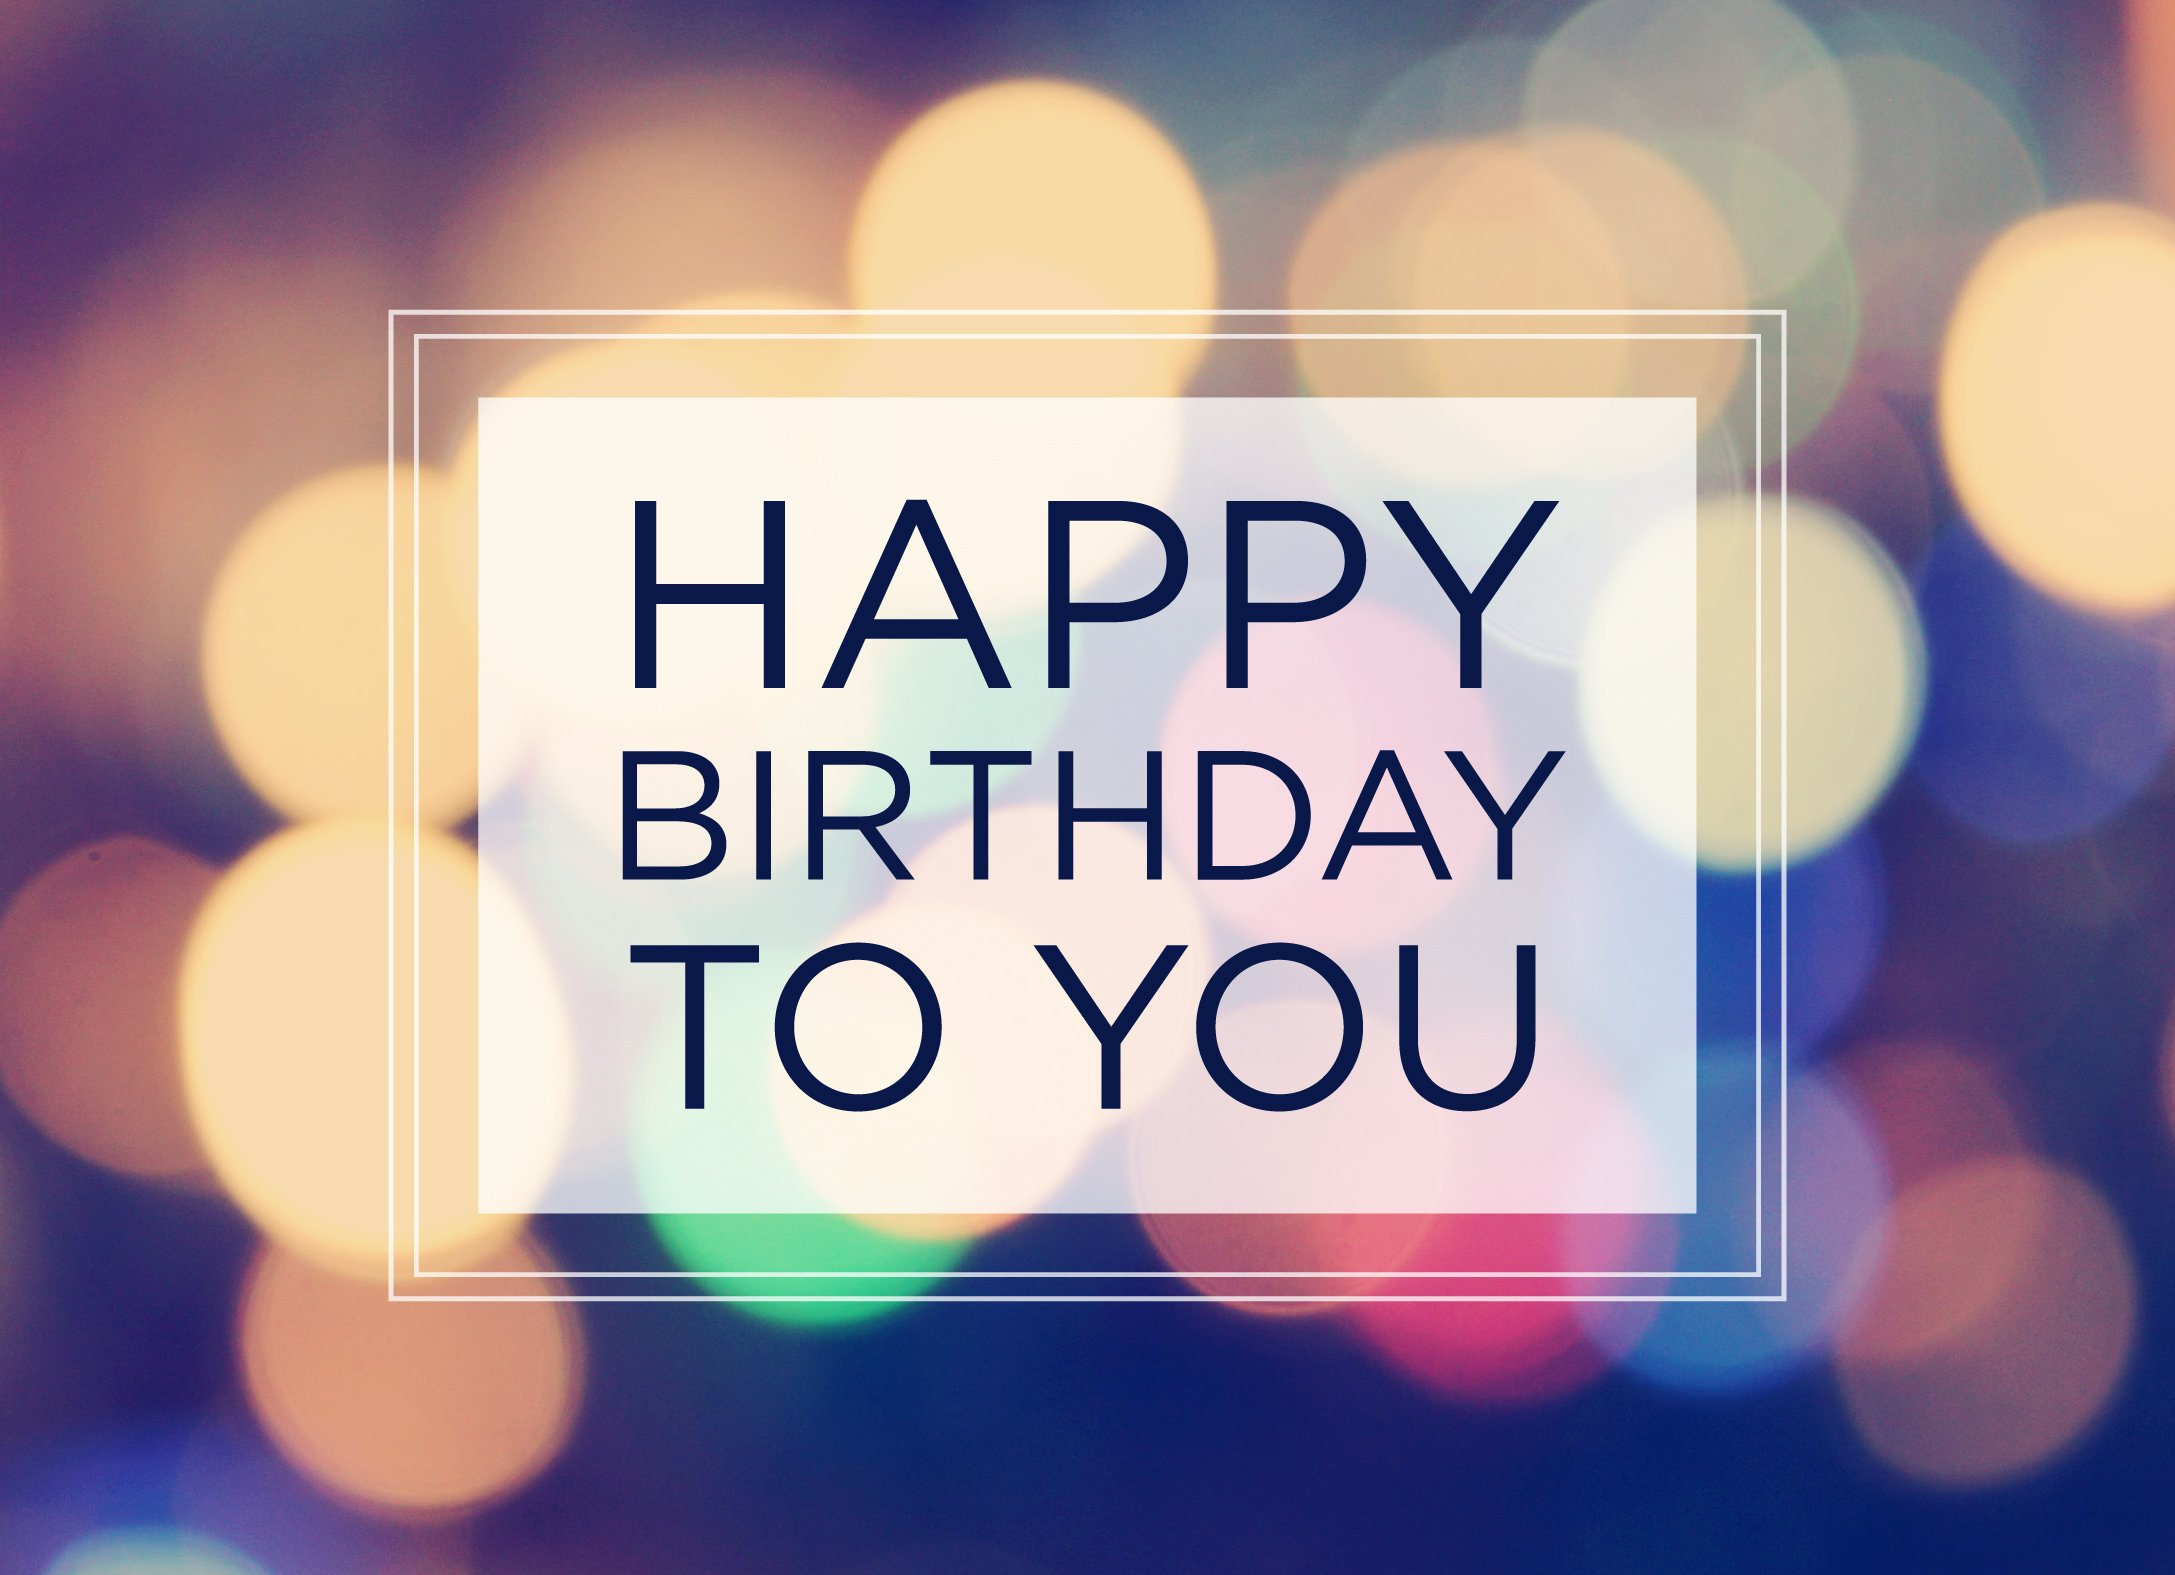 Birthday Greeting Cards - B1603. Greeting Cards Featuring a Happy Birthday Message on a Multi-Colored Light Background. Box Set Has 25 Greeting Cards and 26 Bright White Envelopes.